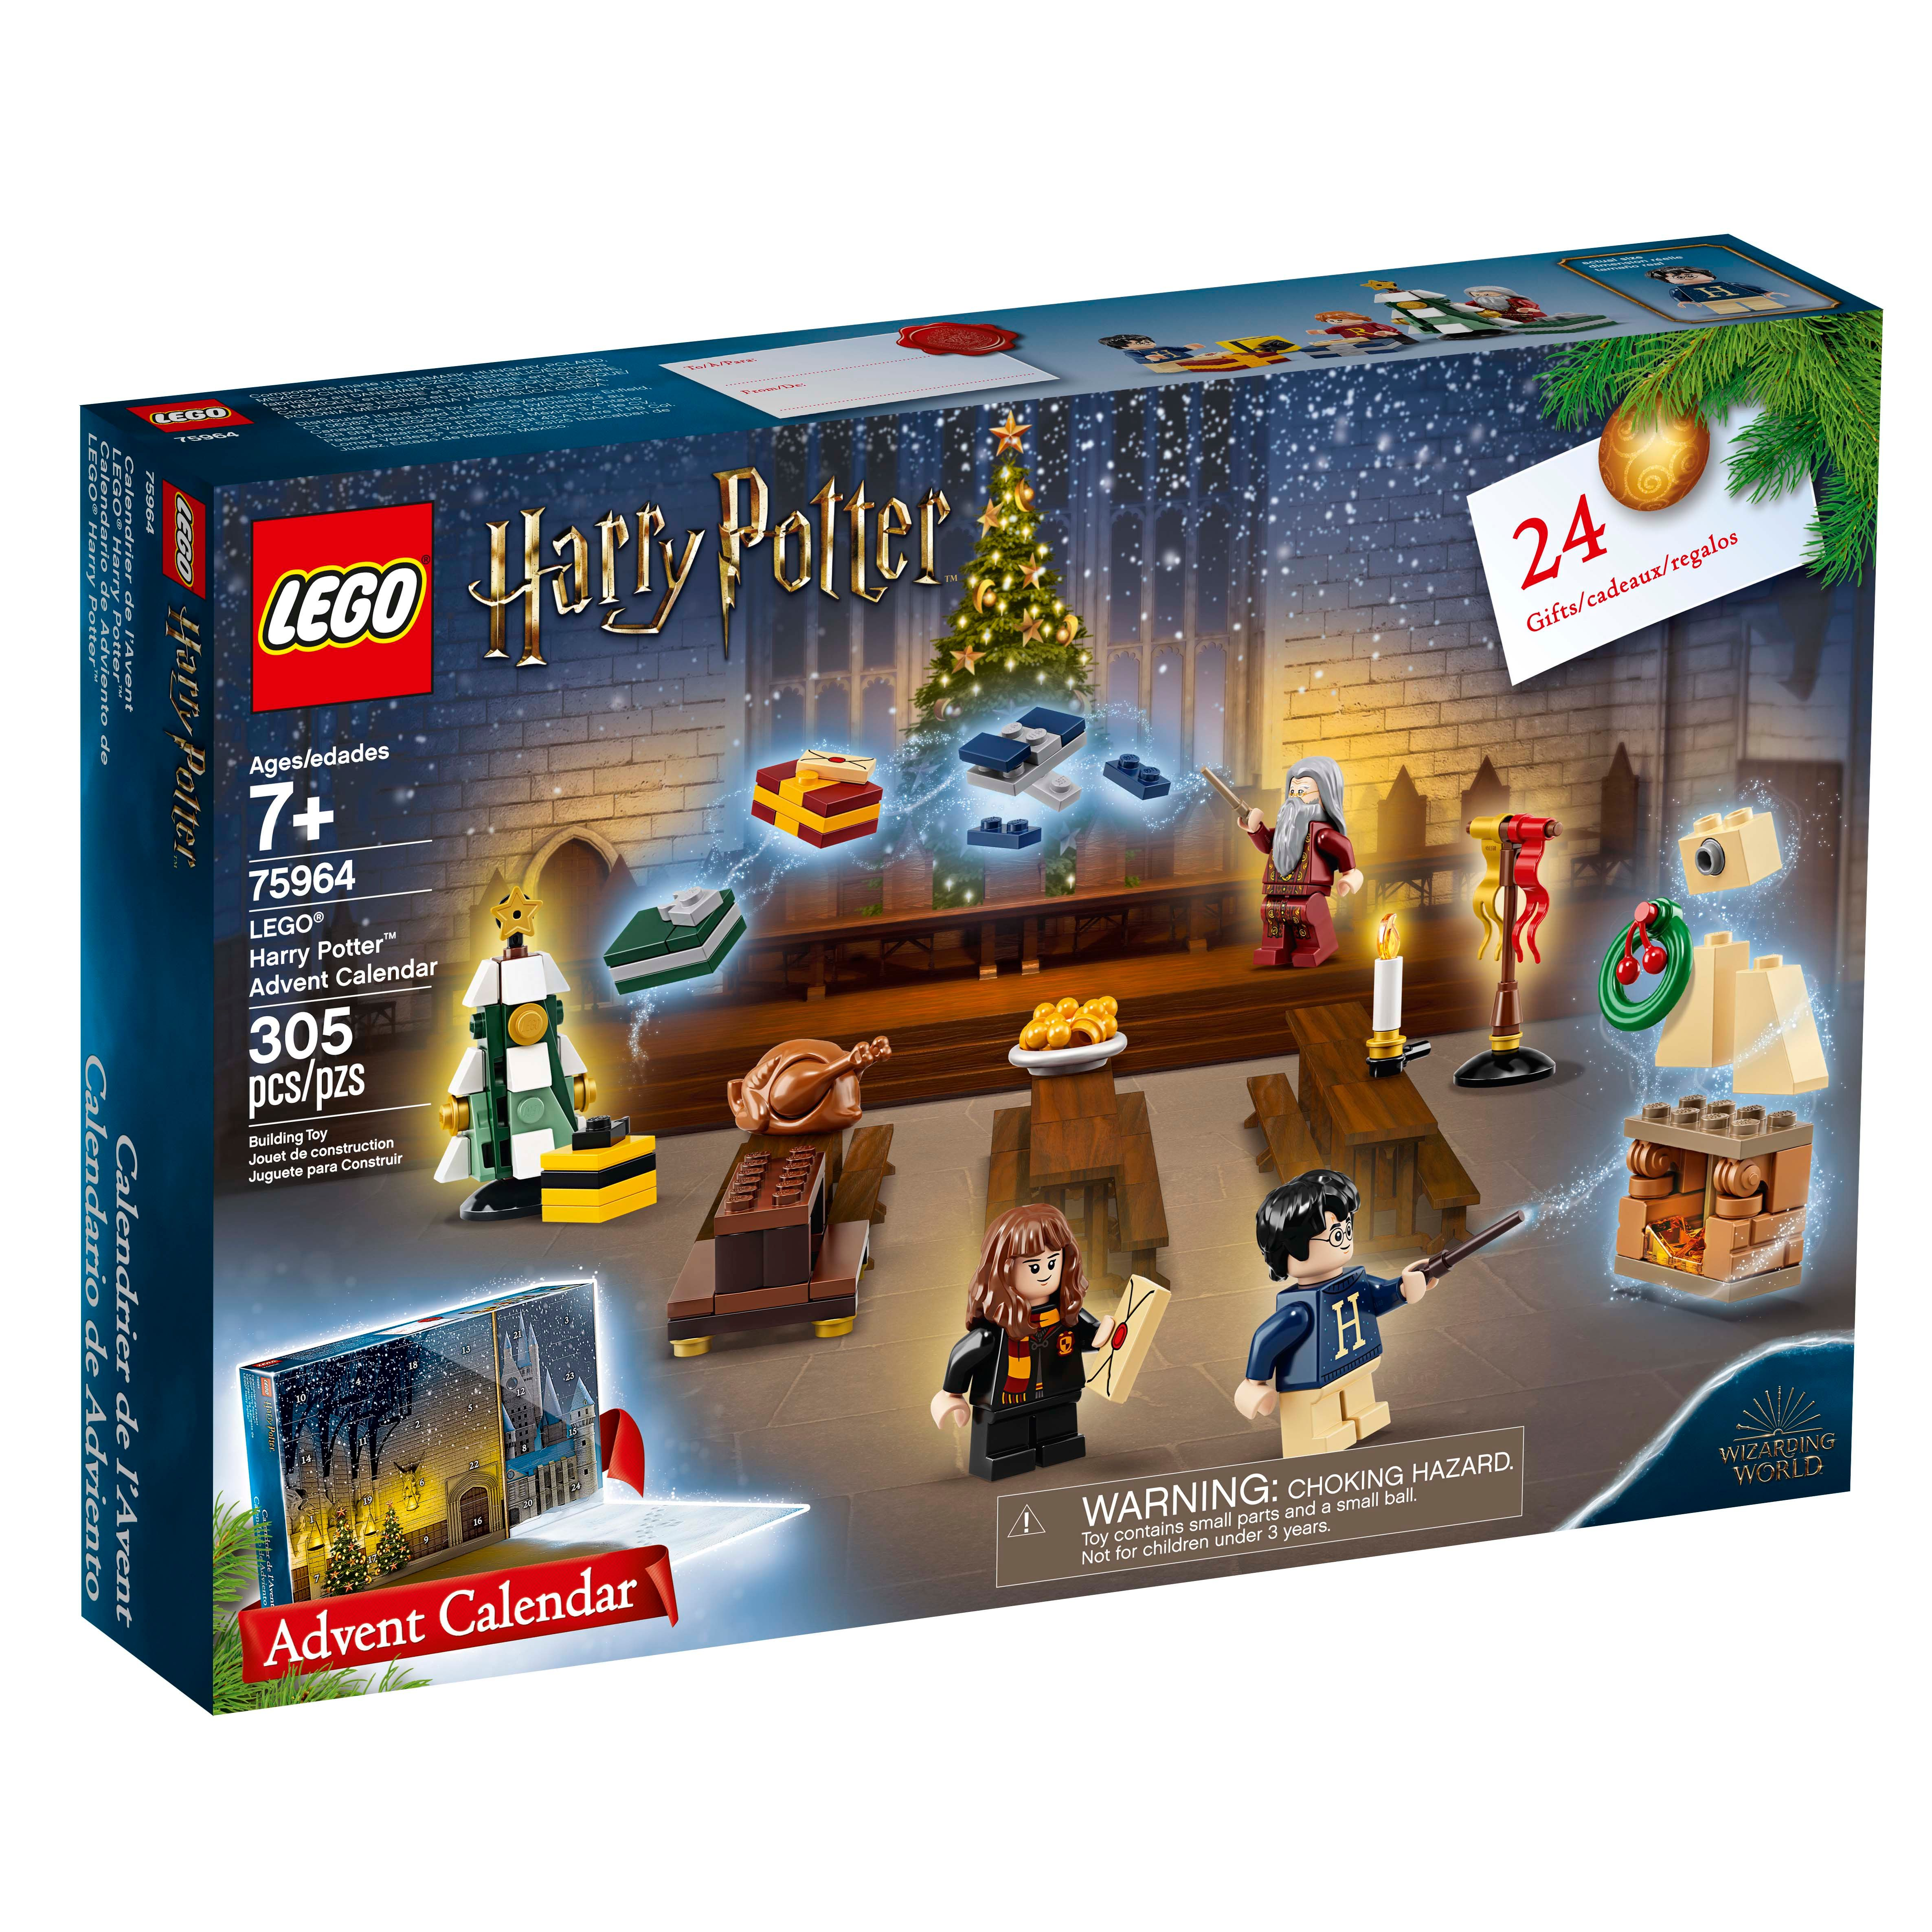 New Lego Harry Potter Sets Arriving This August First